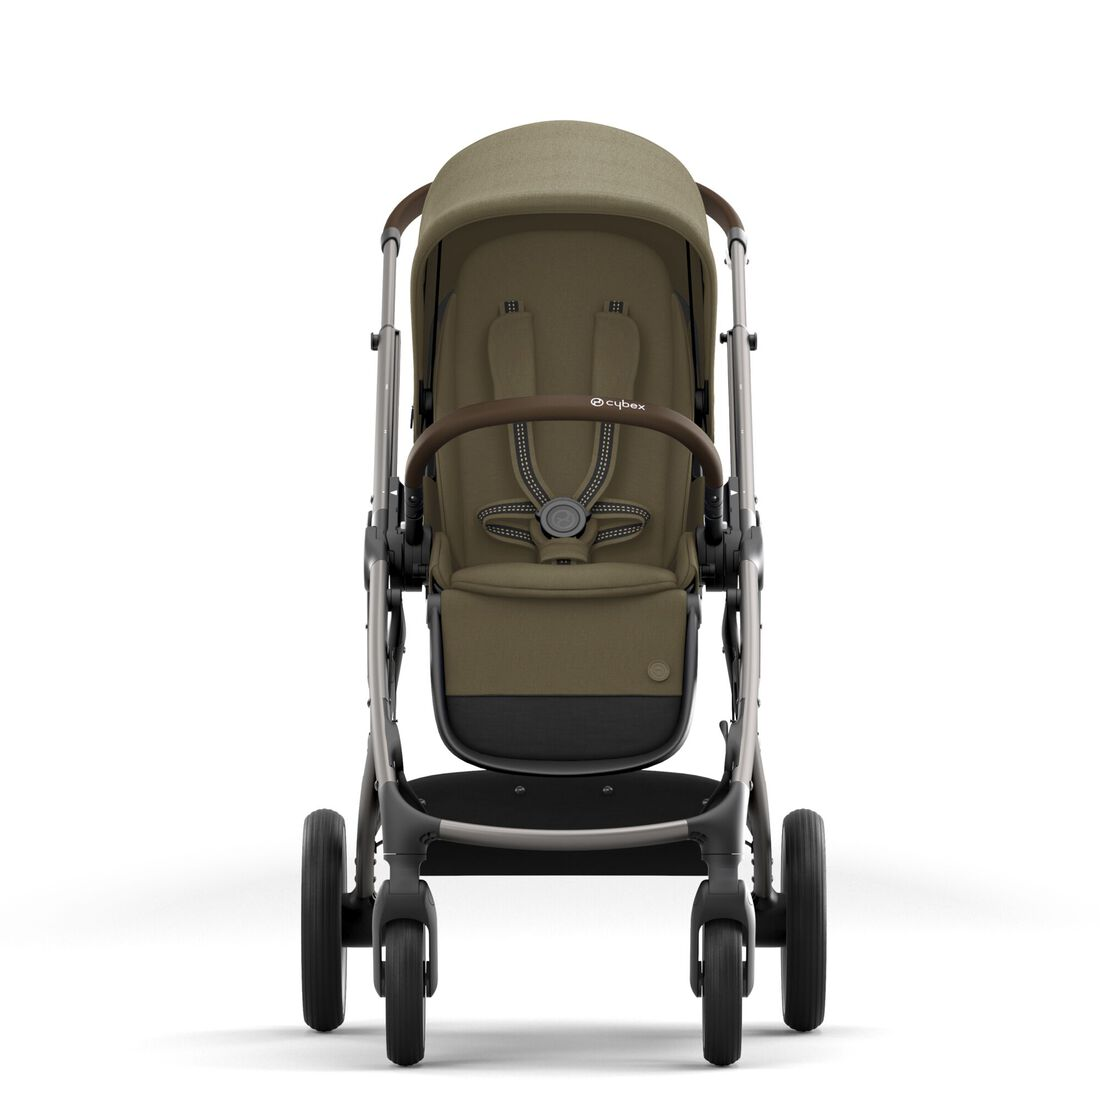 CYBEX Gazelle S - Classic Beige (Taupe Frame) in Classic Beige (Taupe Frame) large Bild 5